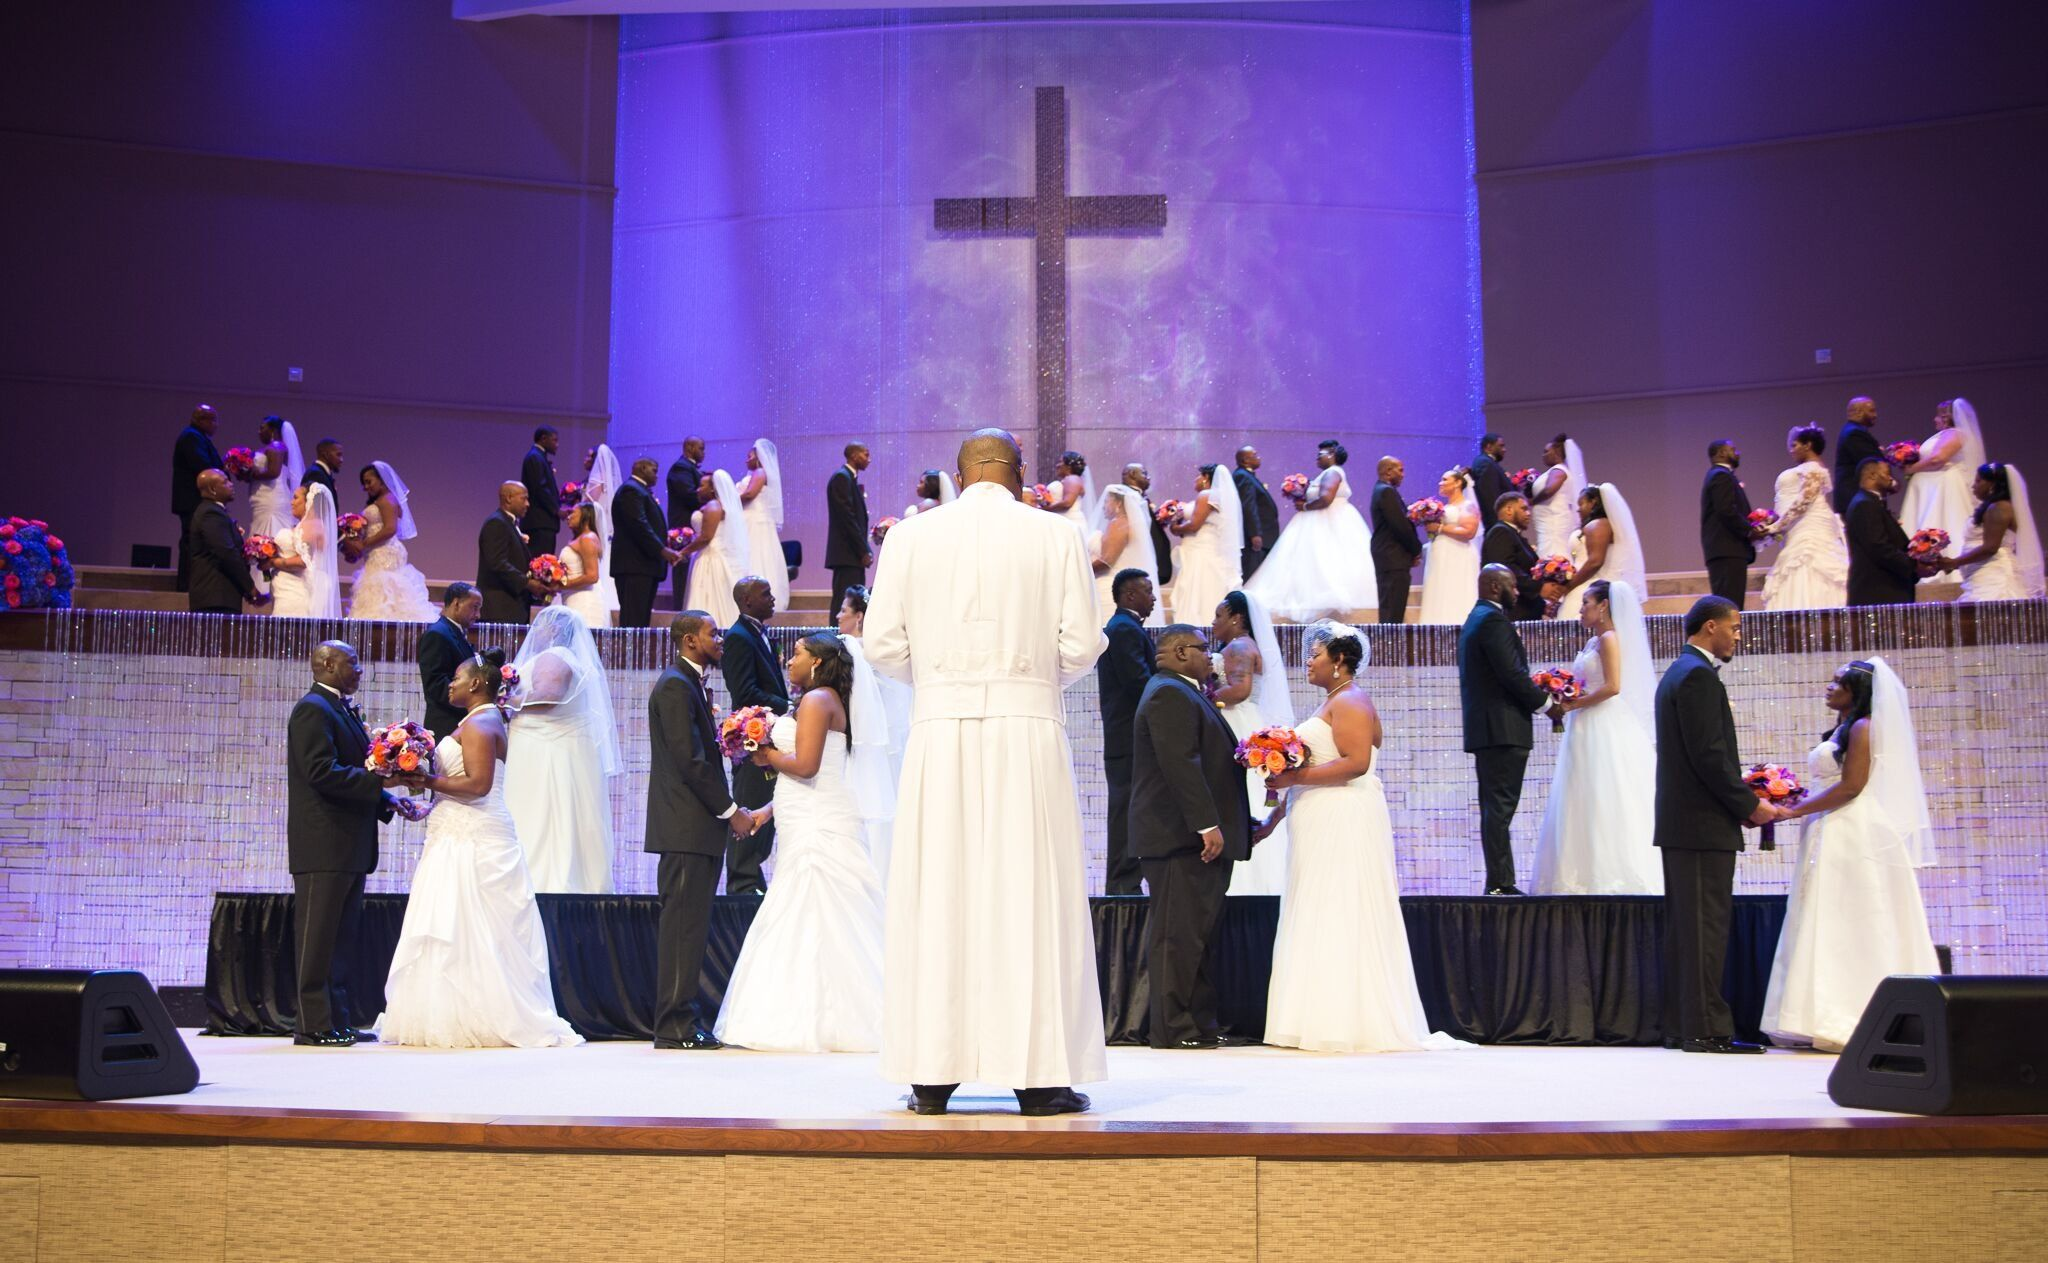 Dallas Church Offers Free Weddings To Couples Living